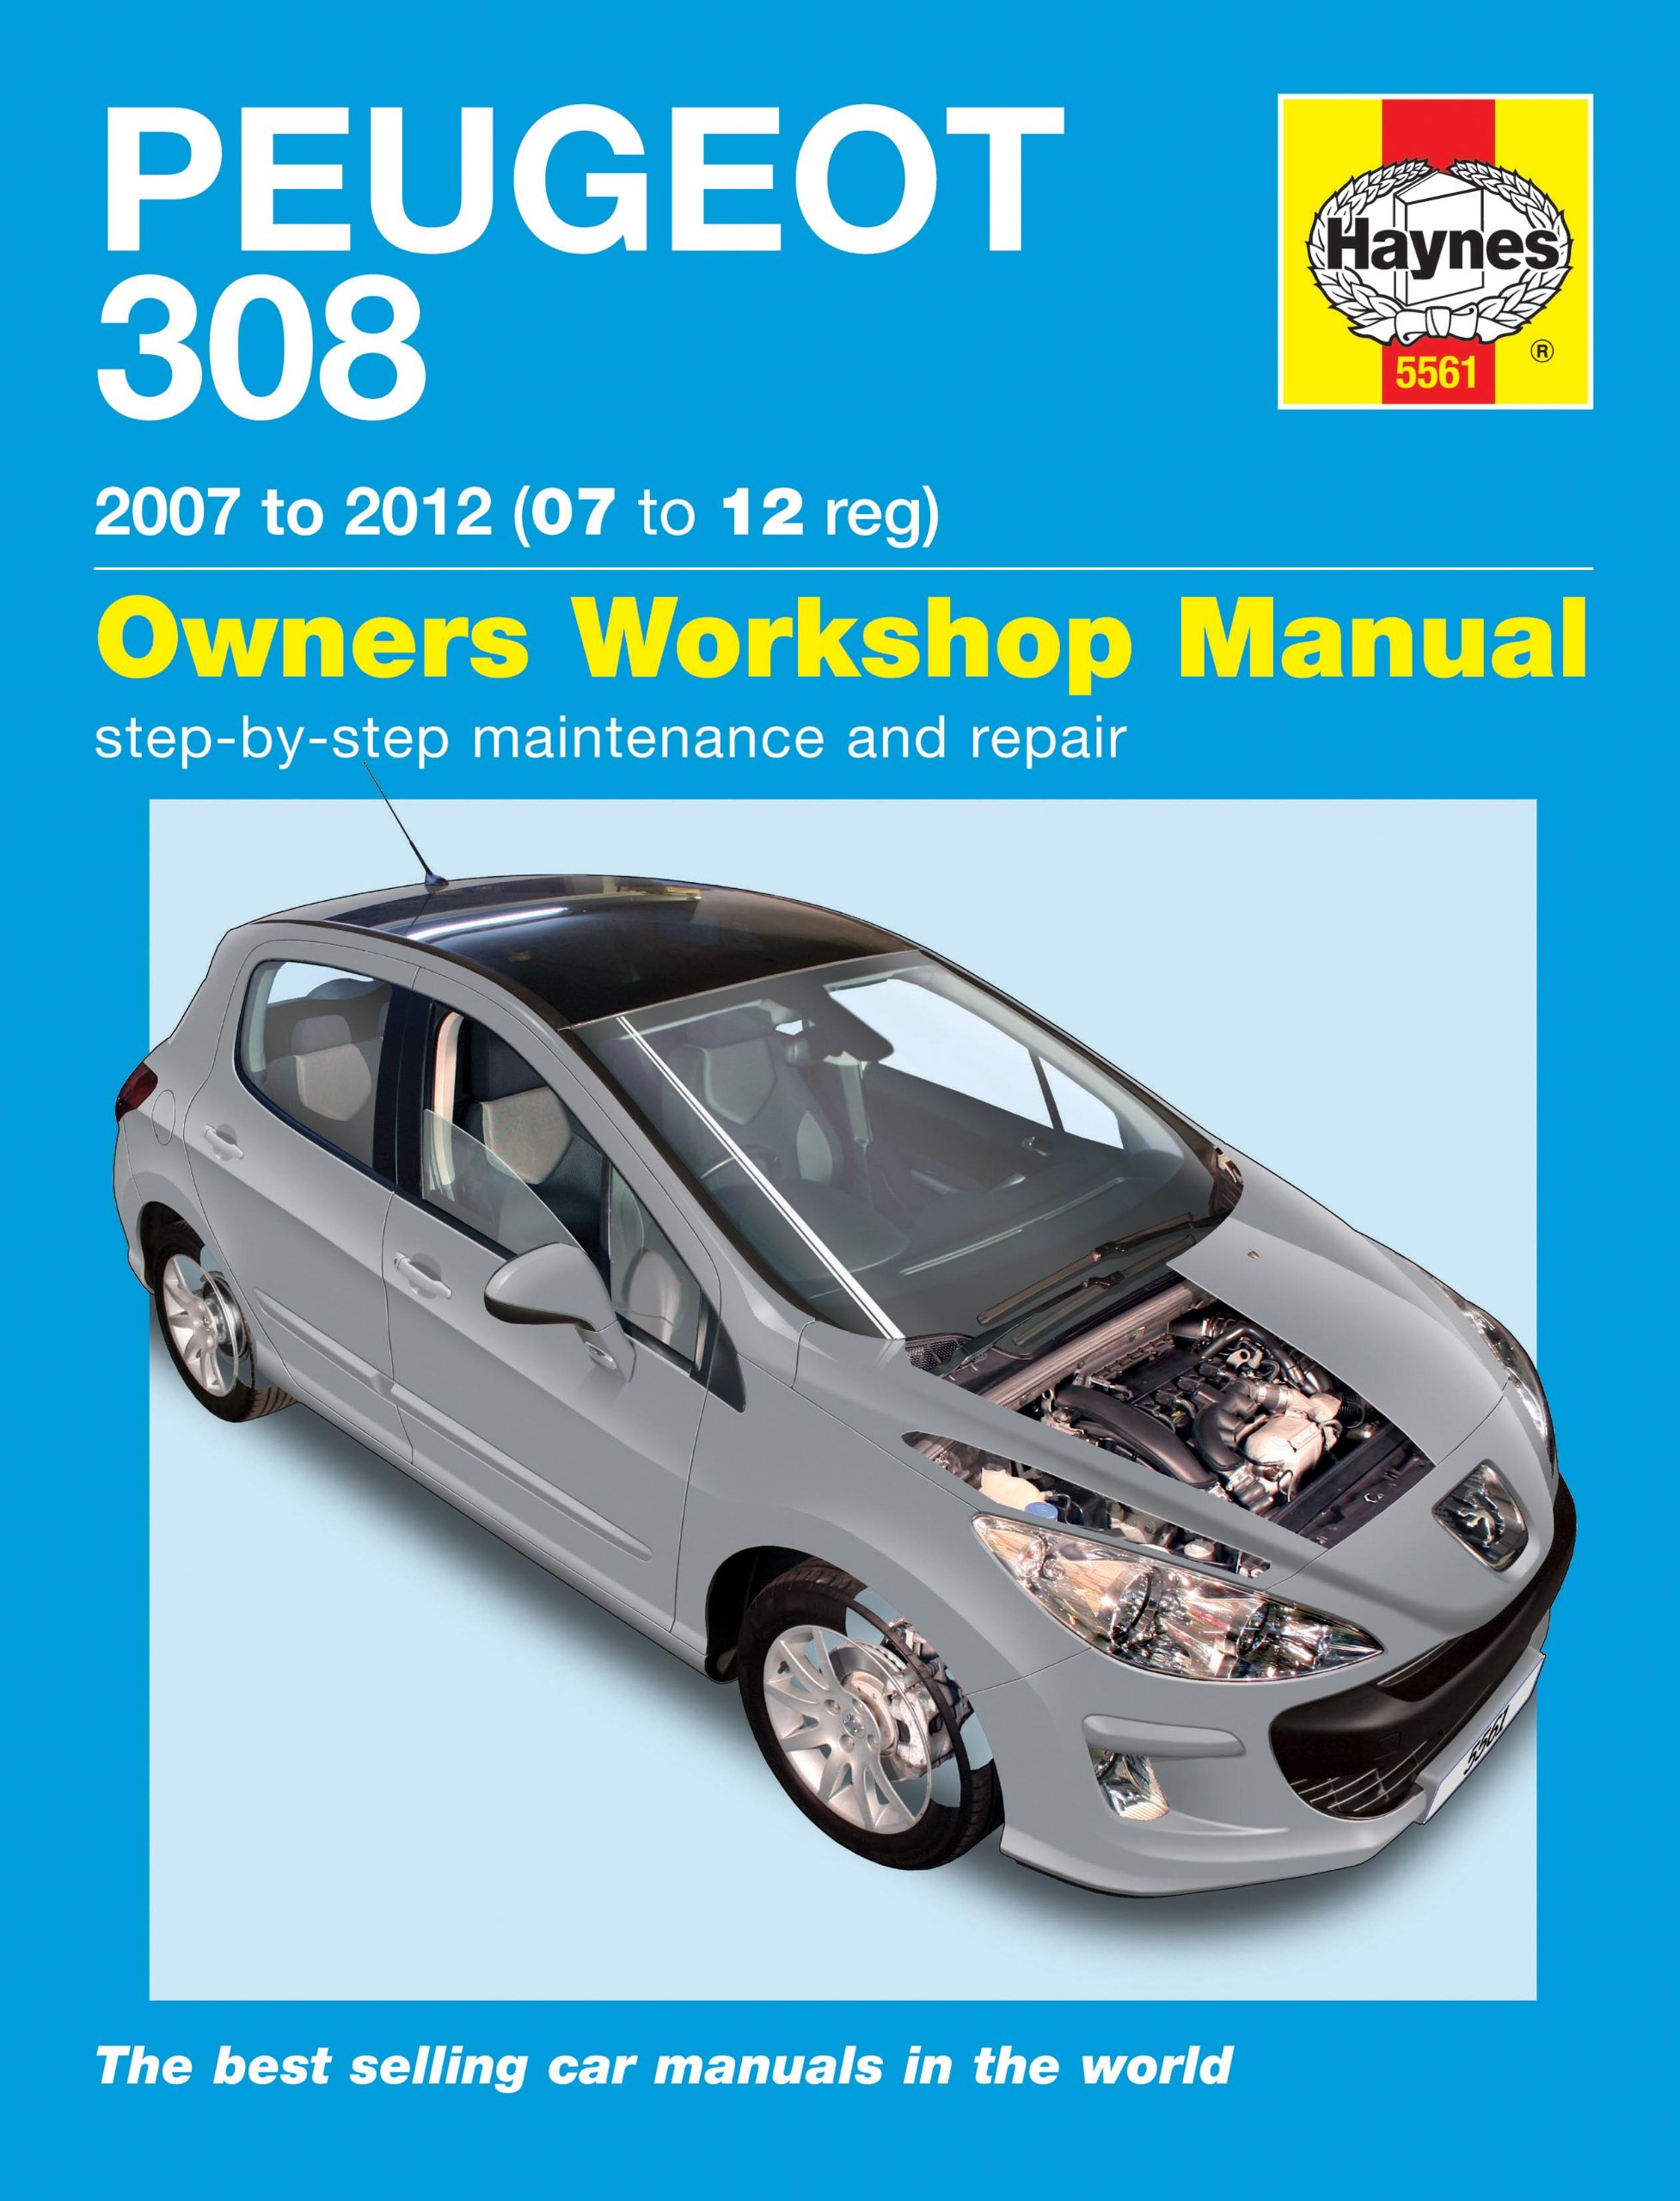 PEUGEOT 308 Petrol & Diesel 07-12: Amazon.co.uk: Haynes ...